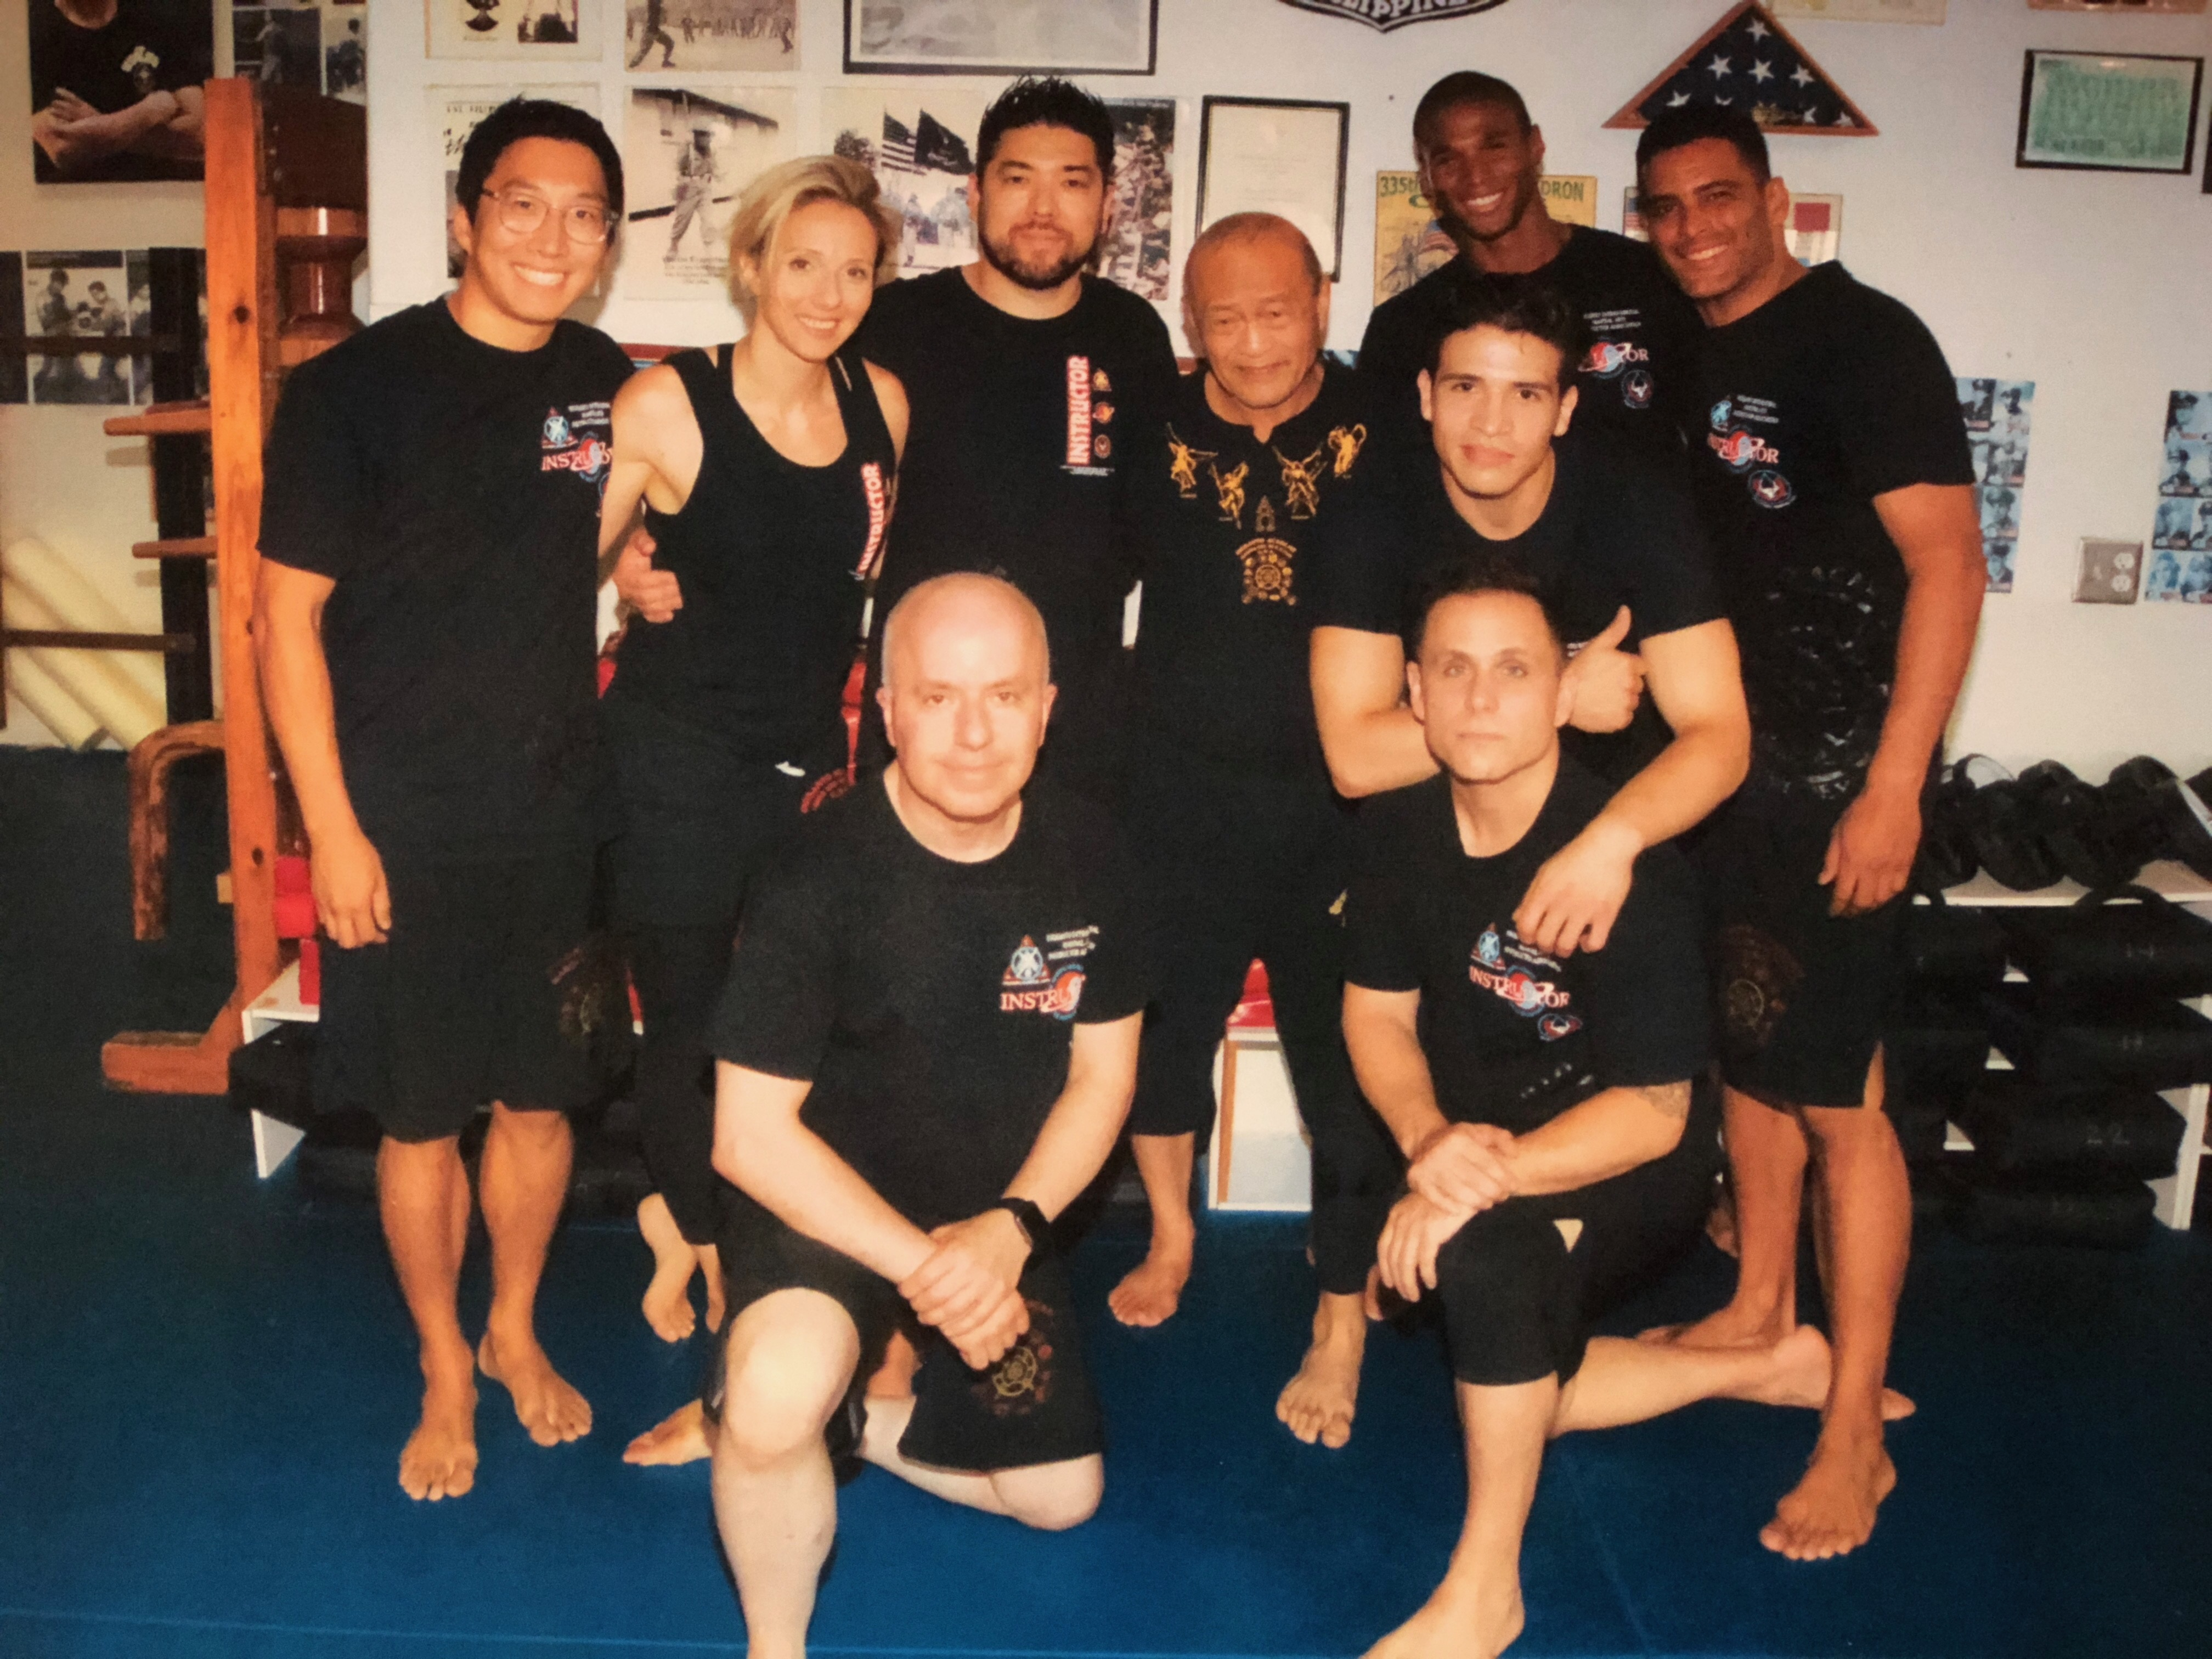 6 Andersons Martial Arts Instructors Are Newly Certified by Guro Dan Inosanto - Jeet Kune Do and Kali - Carrying on the Bruce Lee & Inosanto Lineage